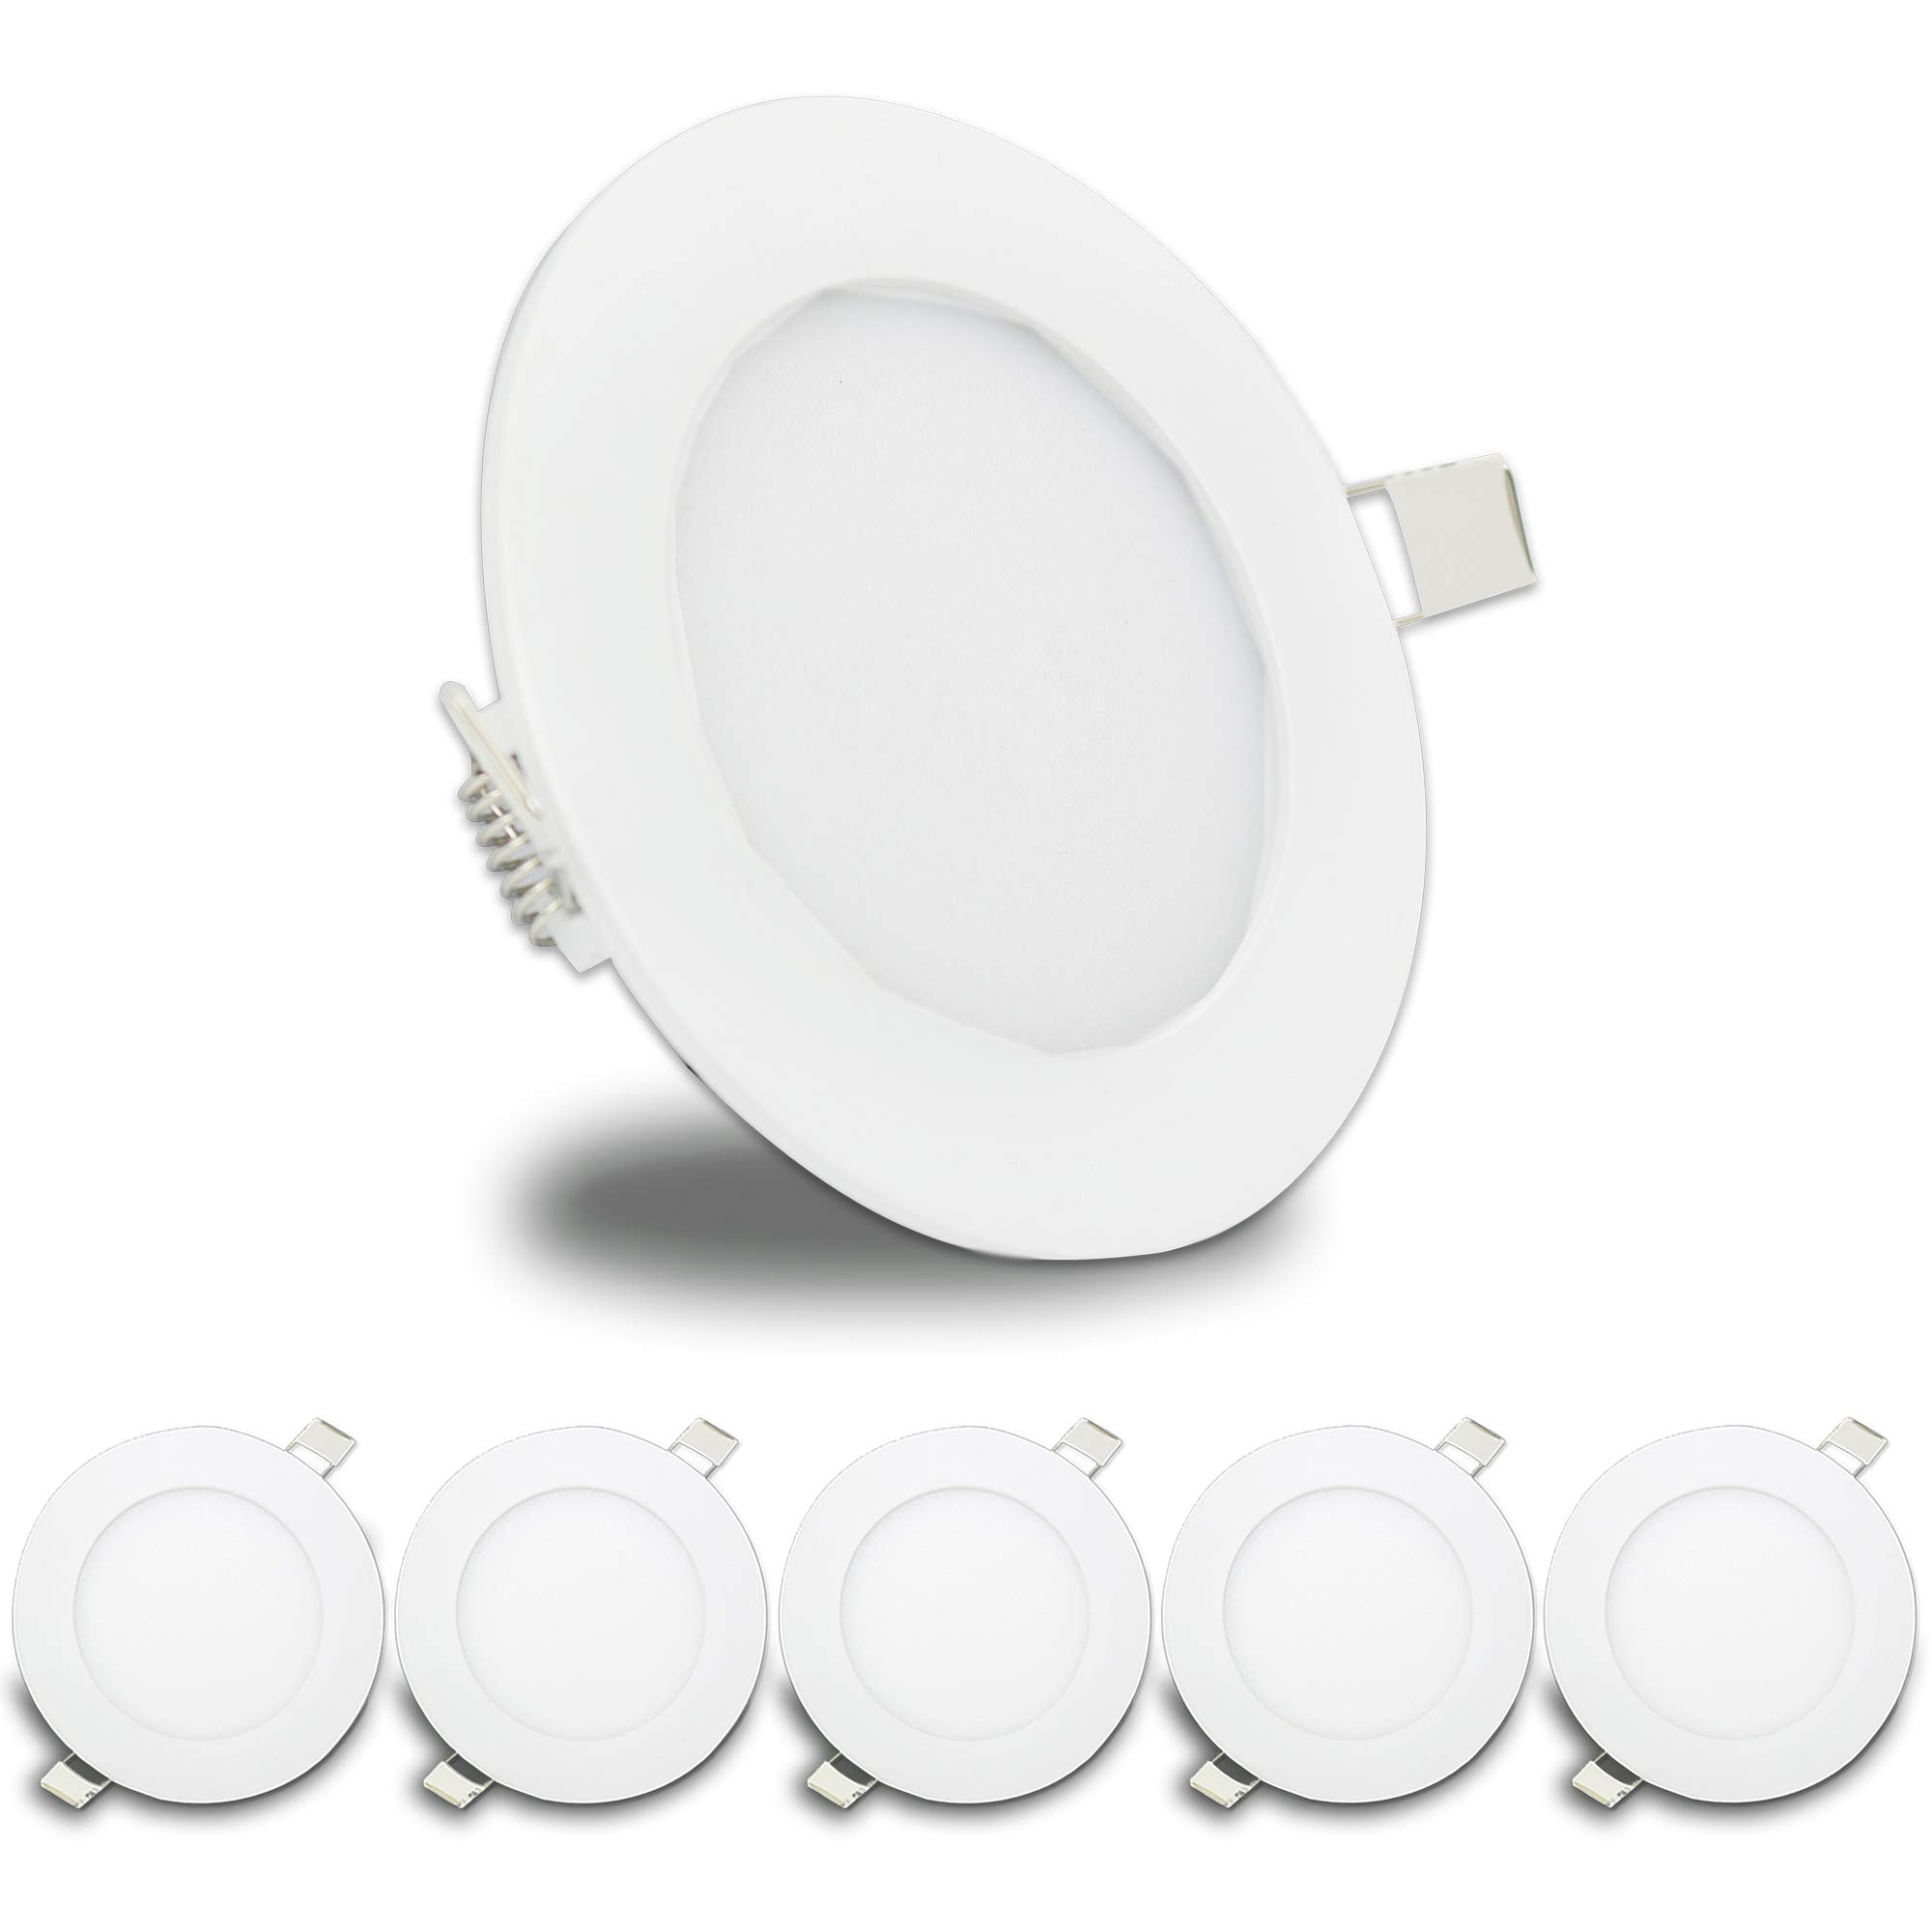 5 Pack Leisure LED RV Boat Recessed Ceiling Light 480 Lumen Super Slim LED Panel Light DC 12V 4.75'' 6W Full Aluminum Downlights, (Cool White) by LeisureLED